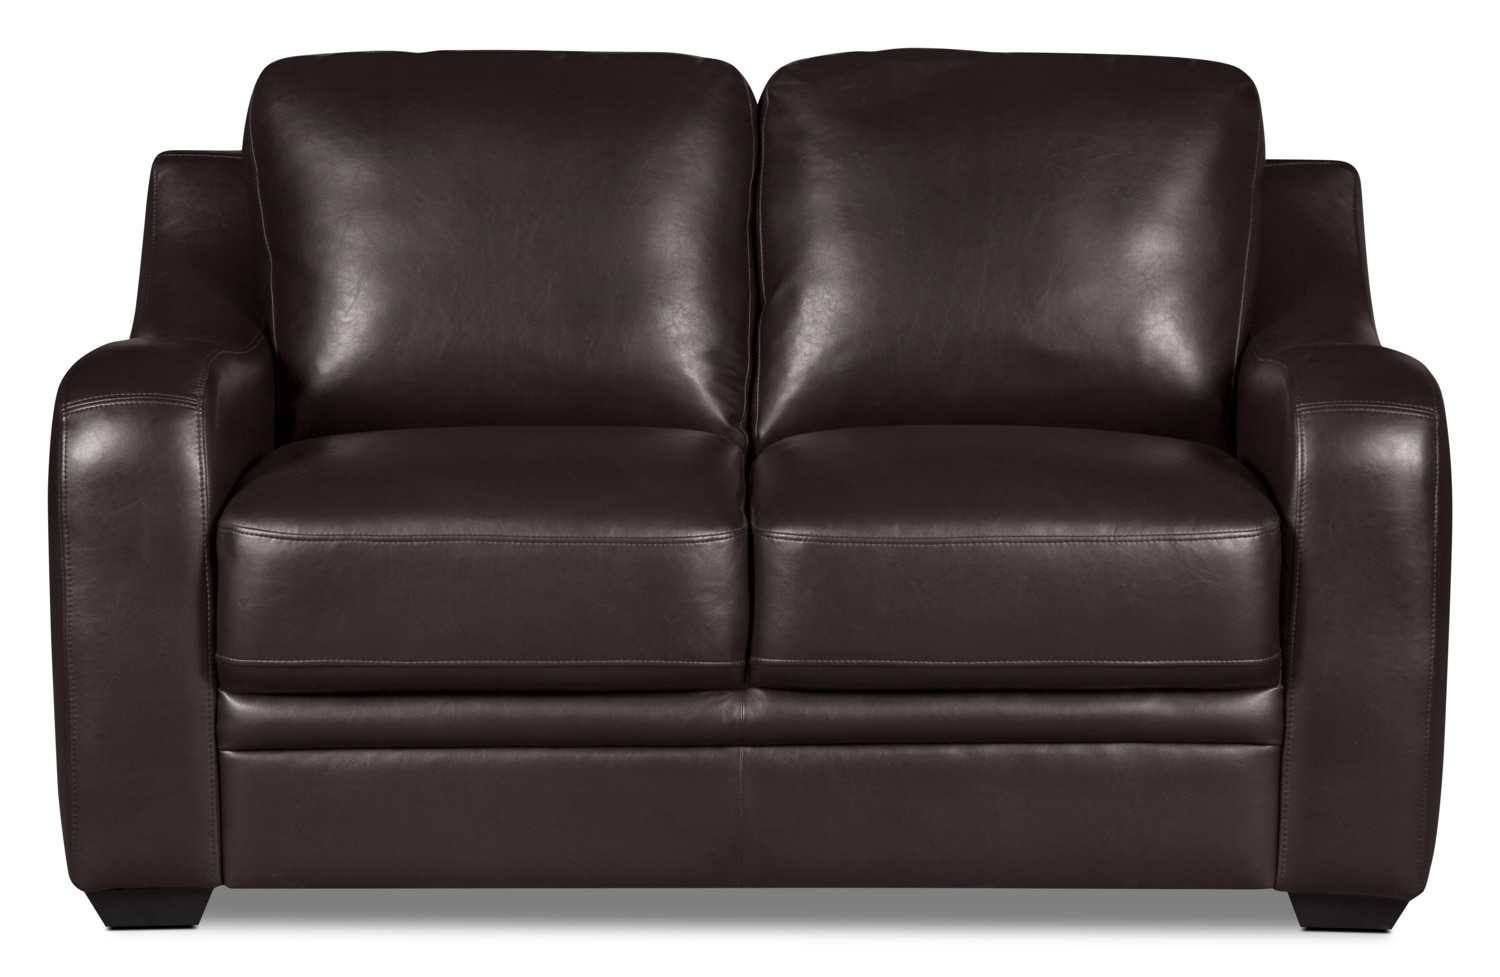 Benson Leather-Look Fabric Loveseat – Brown